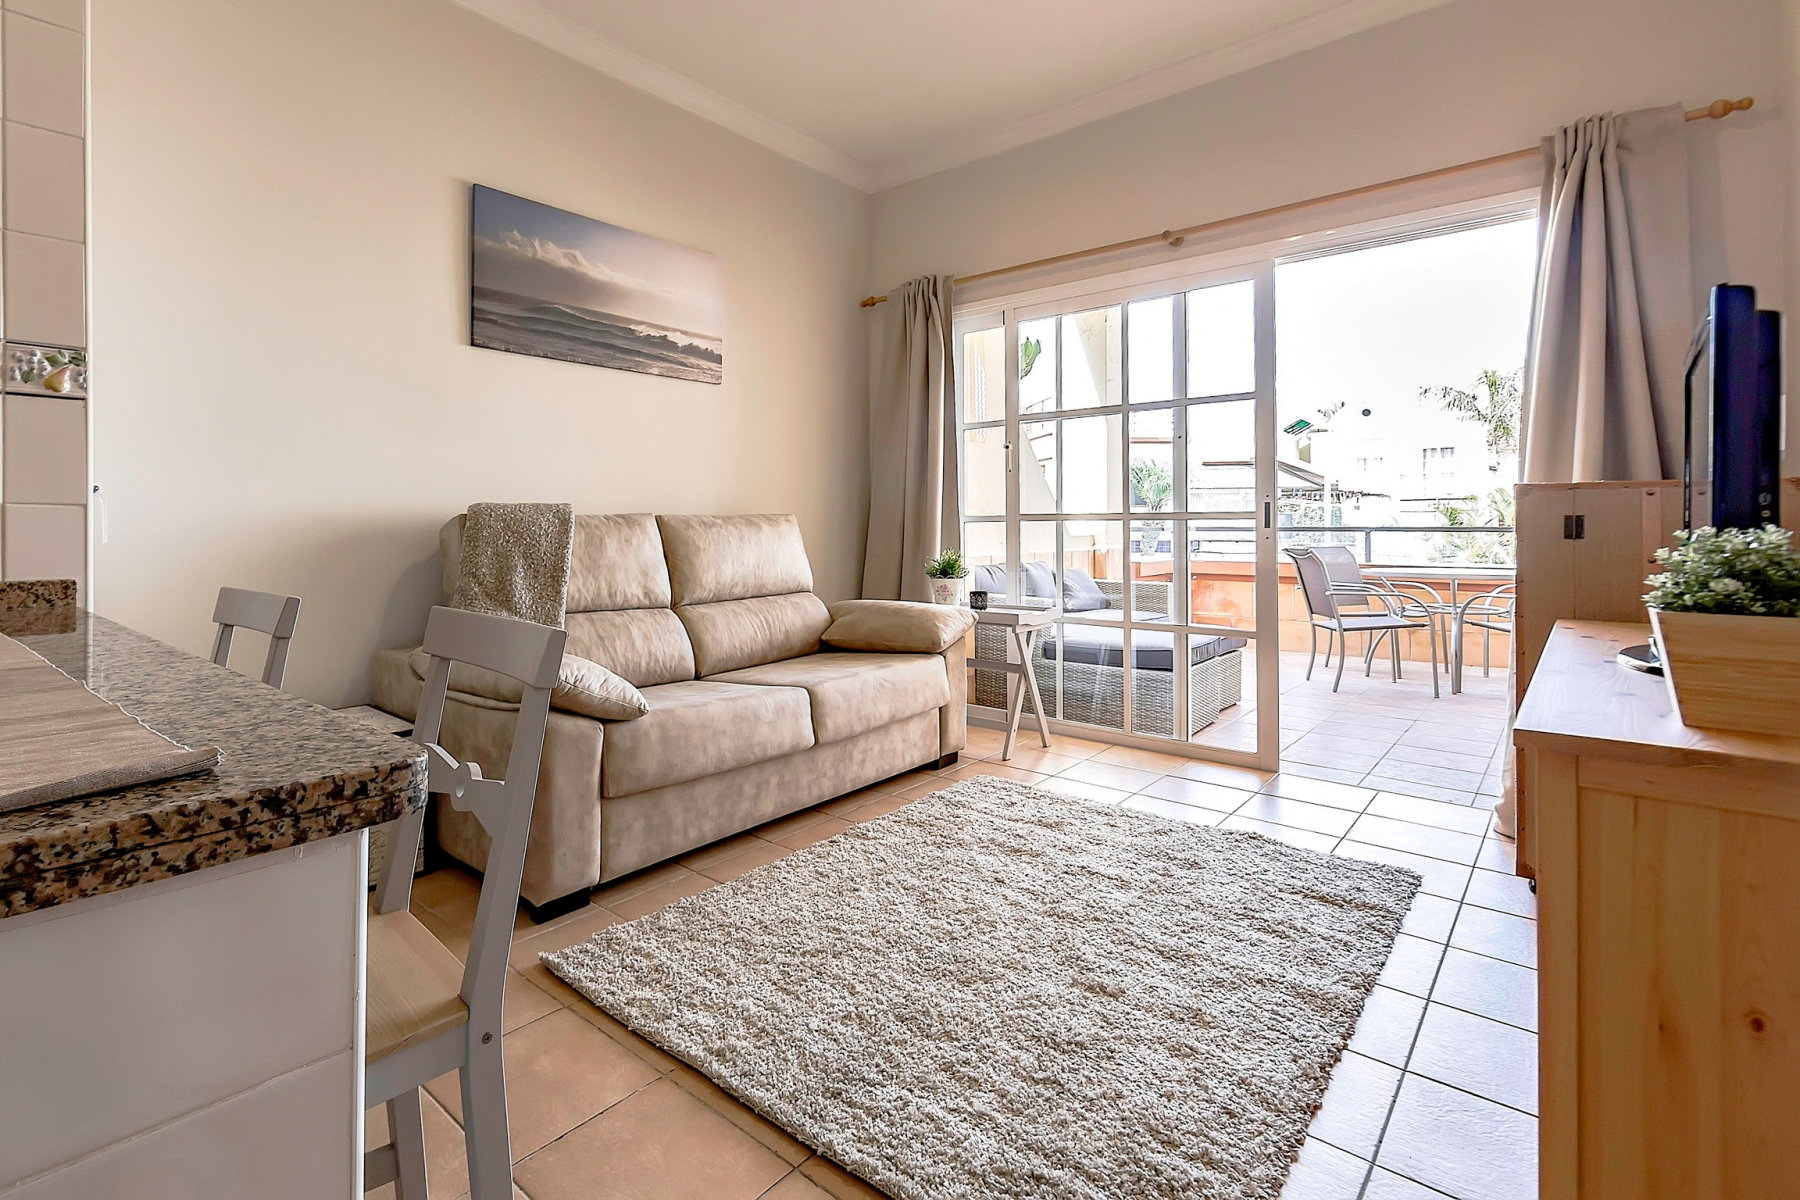 Properties for Sale in Tenerife, Canary Islands, Spain | SylkWayStar Real Estate. 1 bedroom apartment Yucca Park. Image-22588